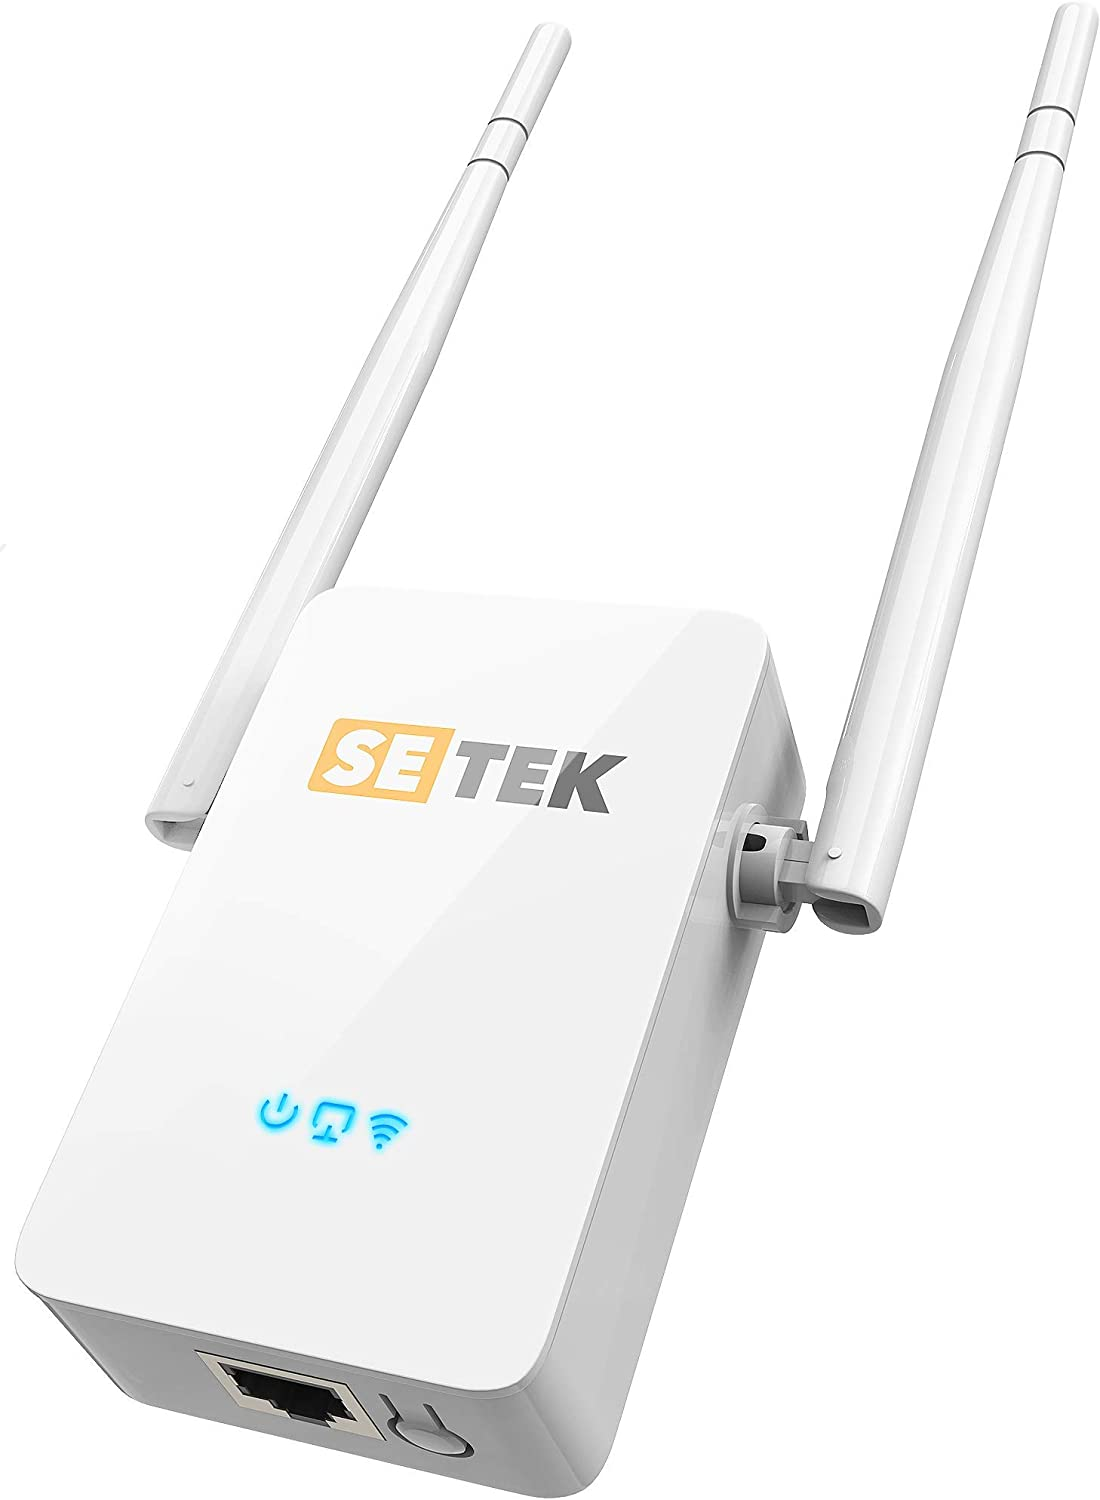 SETEK WiFi Range Extender Repeater Signal Booster to 2500 FT, 300 MBPS Wireless Internet Amplifier - Covers 15 Devices with 2 External Advanced Antennas, 5 Working Modes, LAN/Ethernet